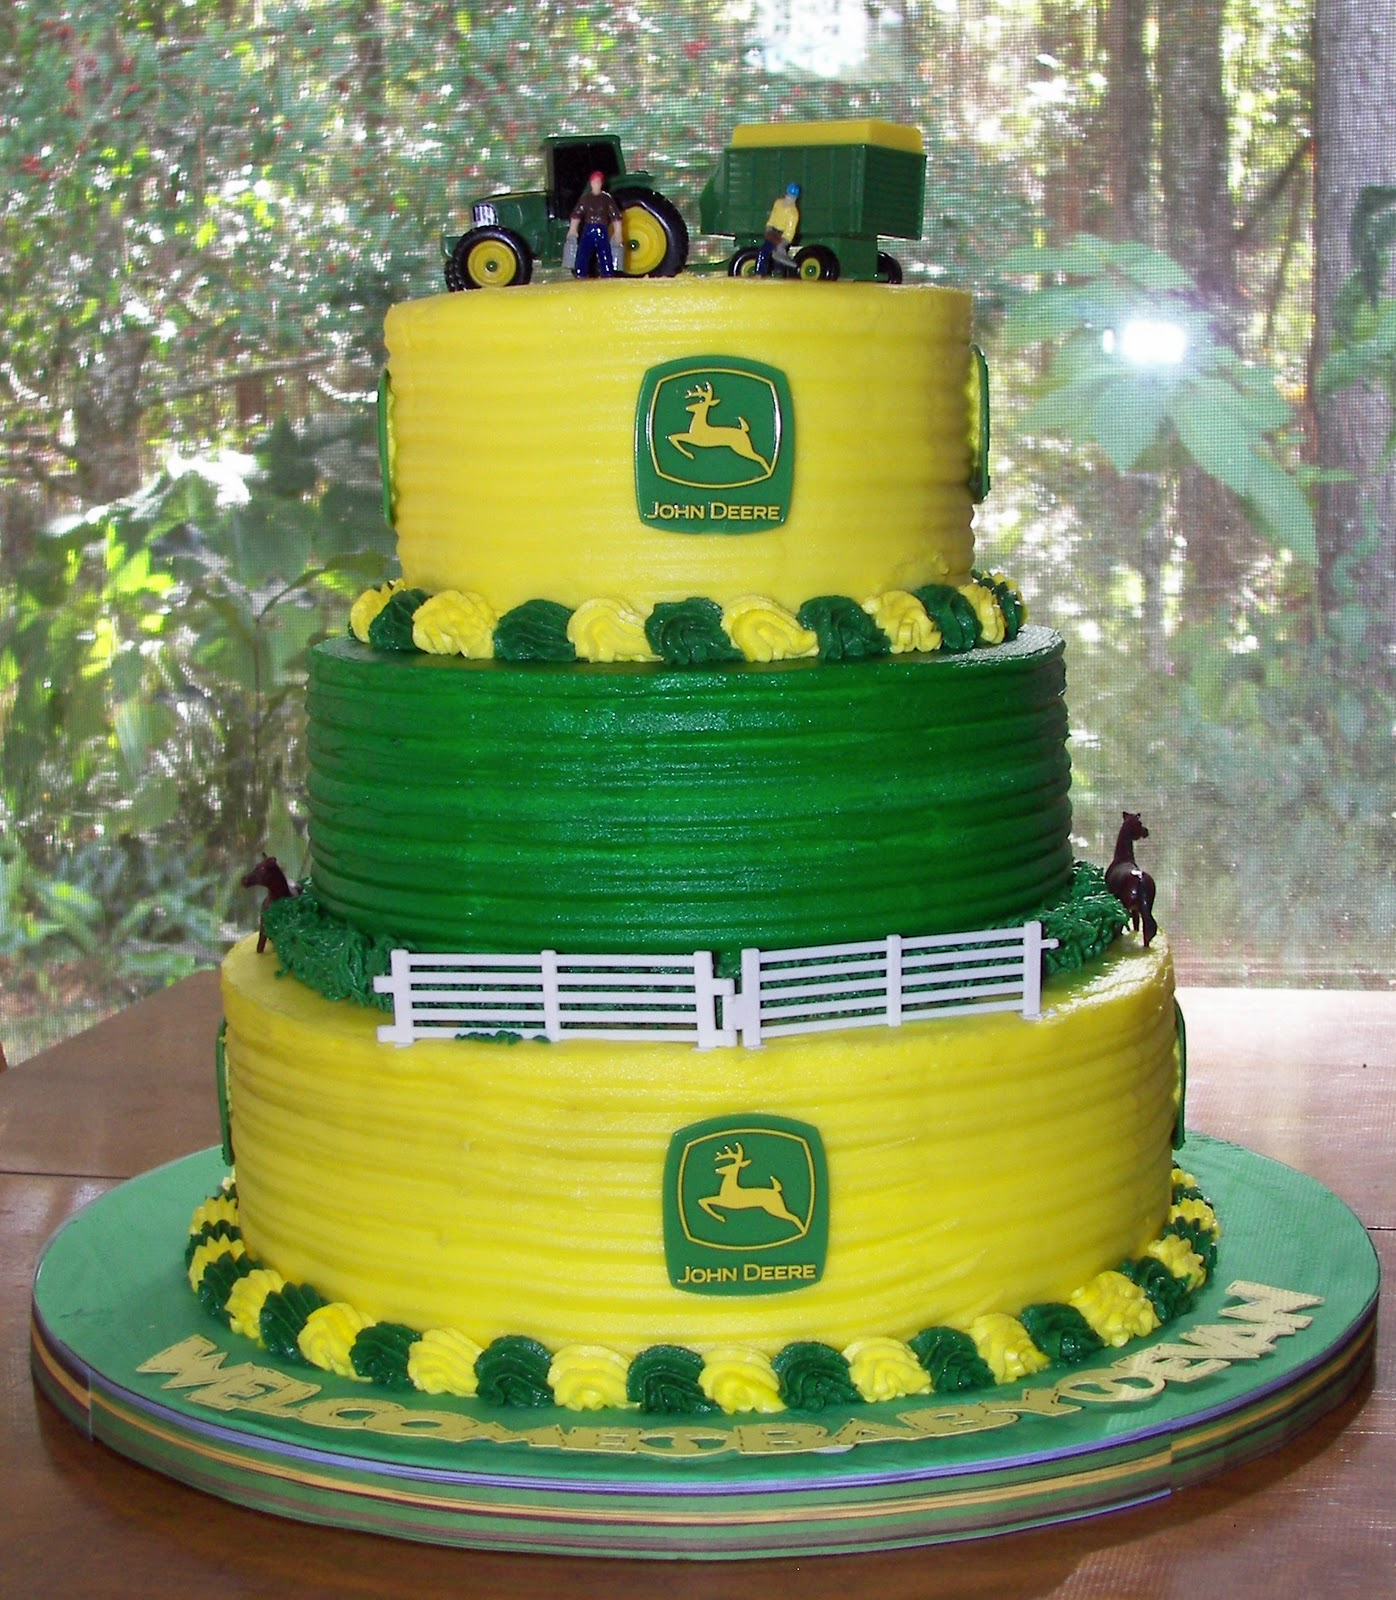 John Deere Baby Shower Cake